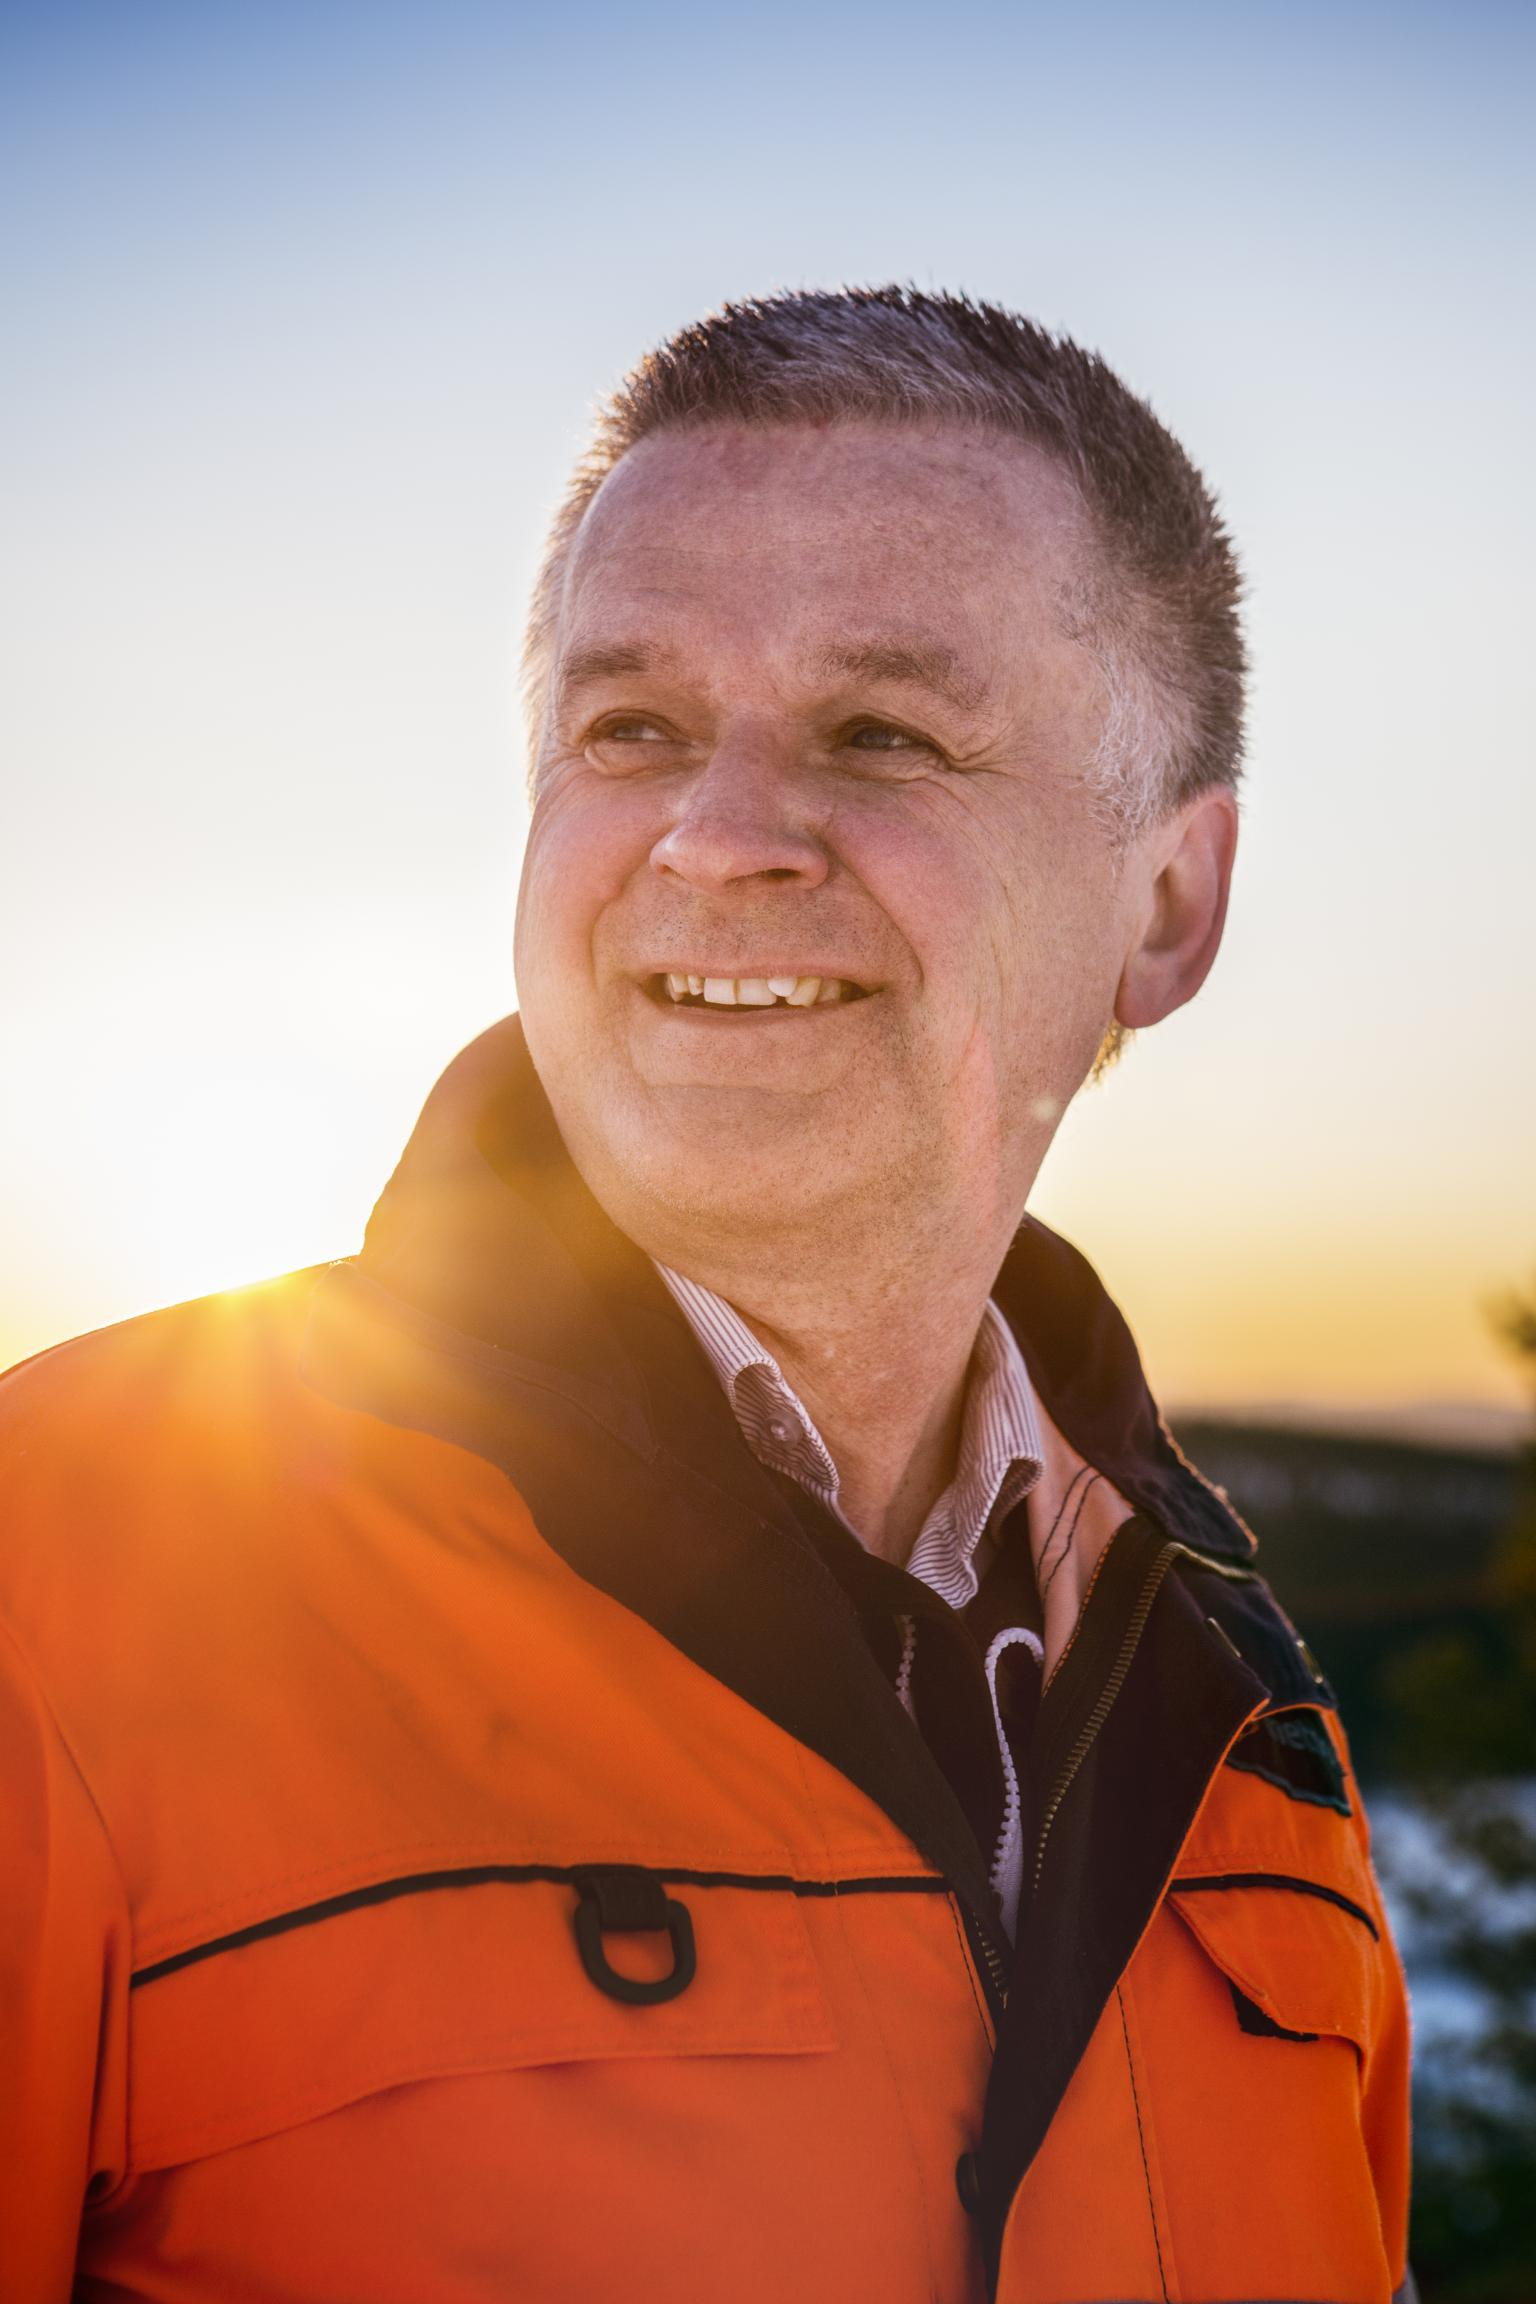 """""""We know when to run the mills a little bit longer and just how to get a bit more out of the mill linings."""" Christer Brännström, General Manager, SBL Operations, Sweden, Metso Mining and Construction"""